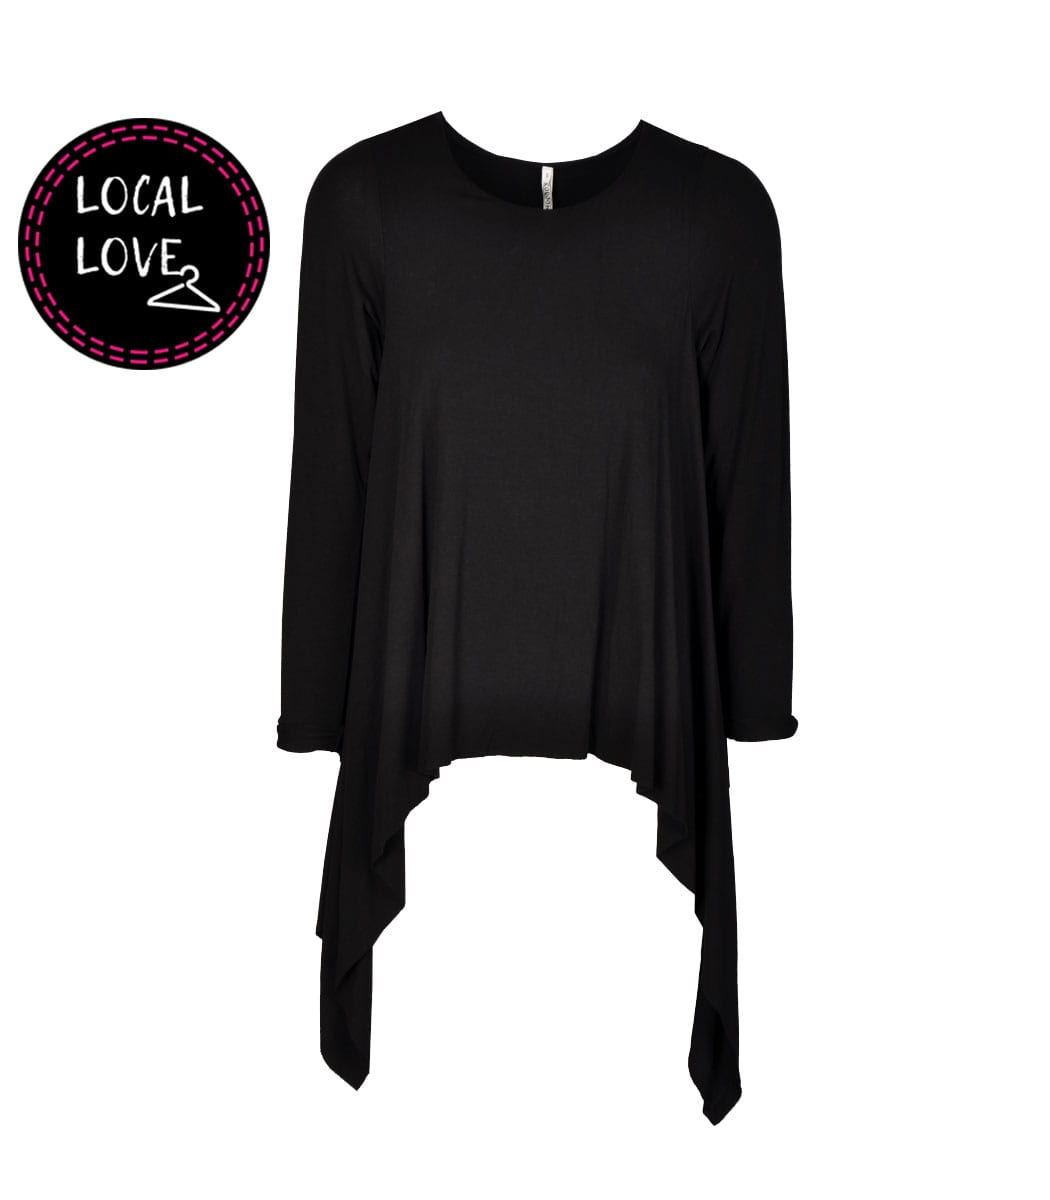 Cocoon double layer long sleeve top